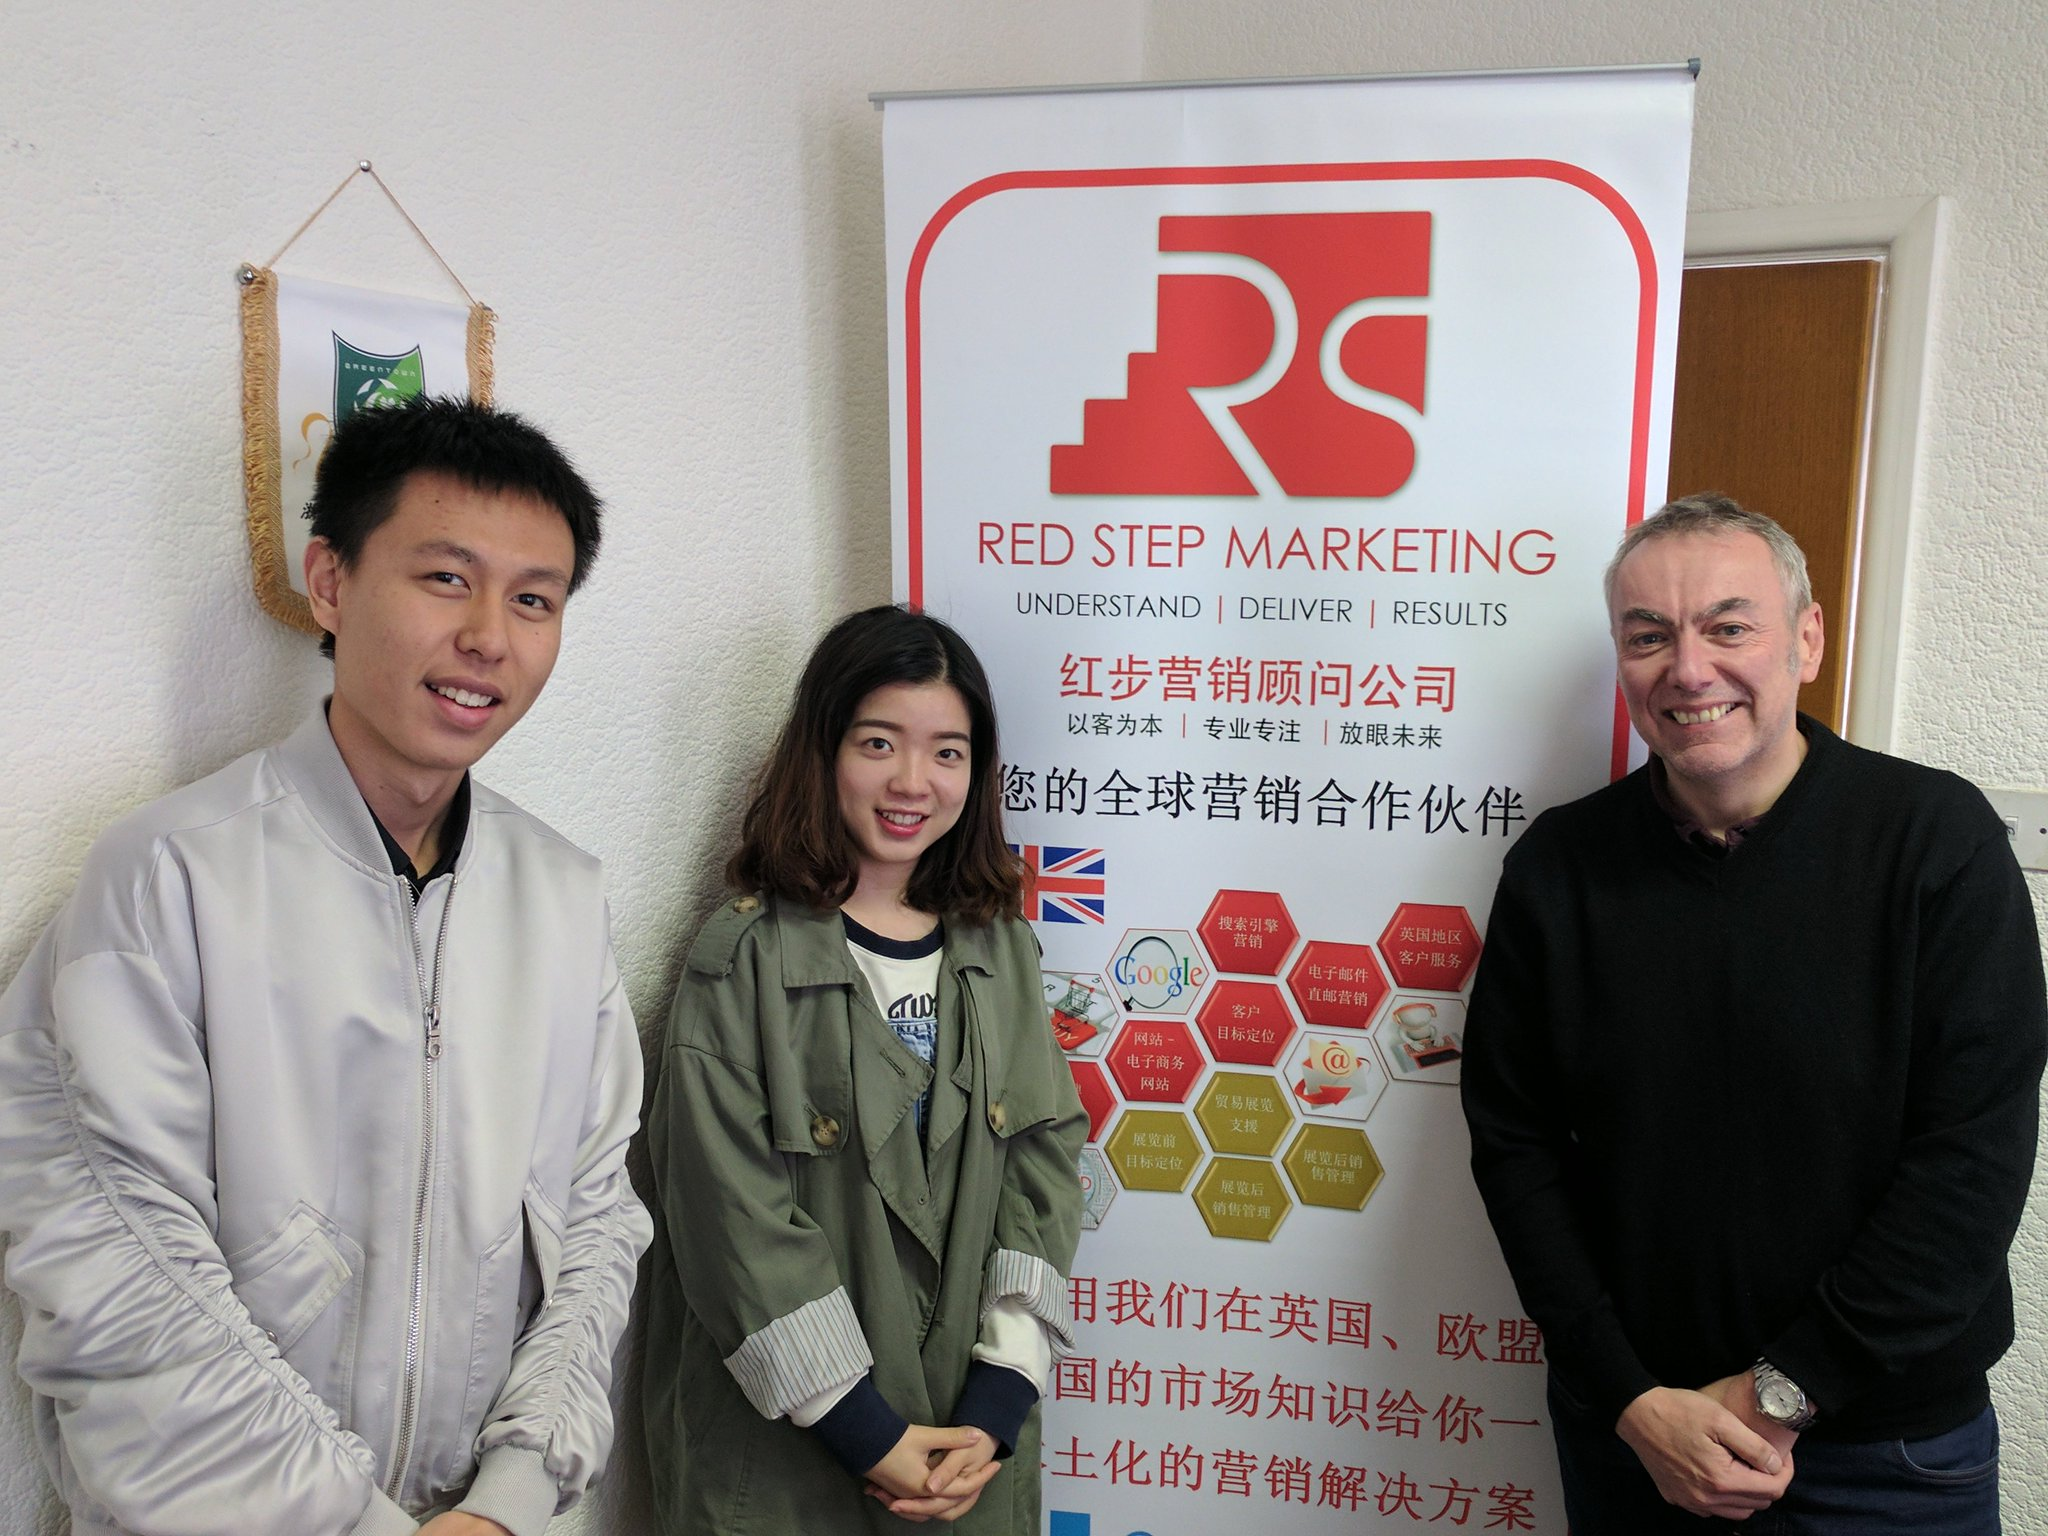 Welcome to Haomiao & Clarence from @uochester who start their 5 week placement with us today! #china #workexperience https://t.co/NkbVlQIJ3Z